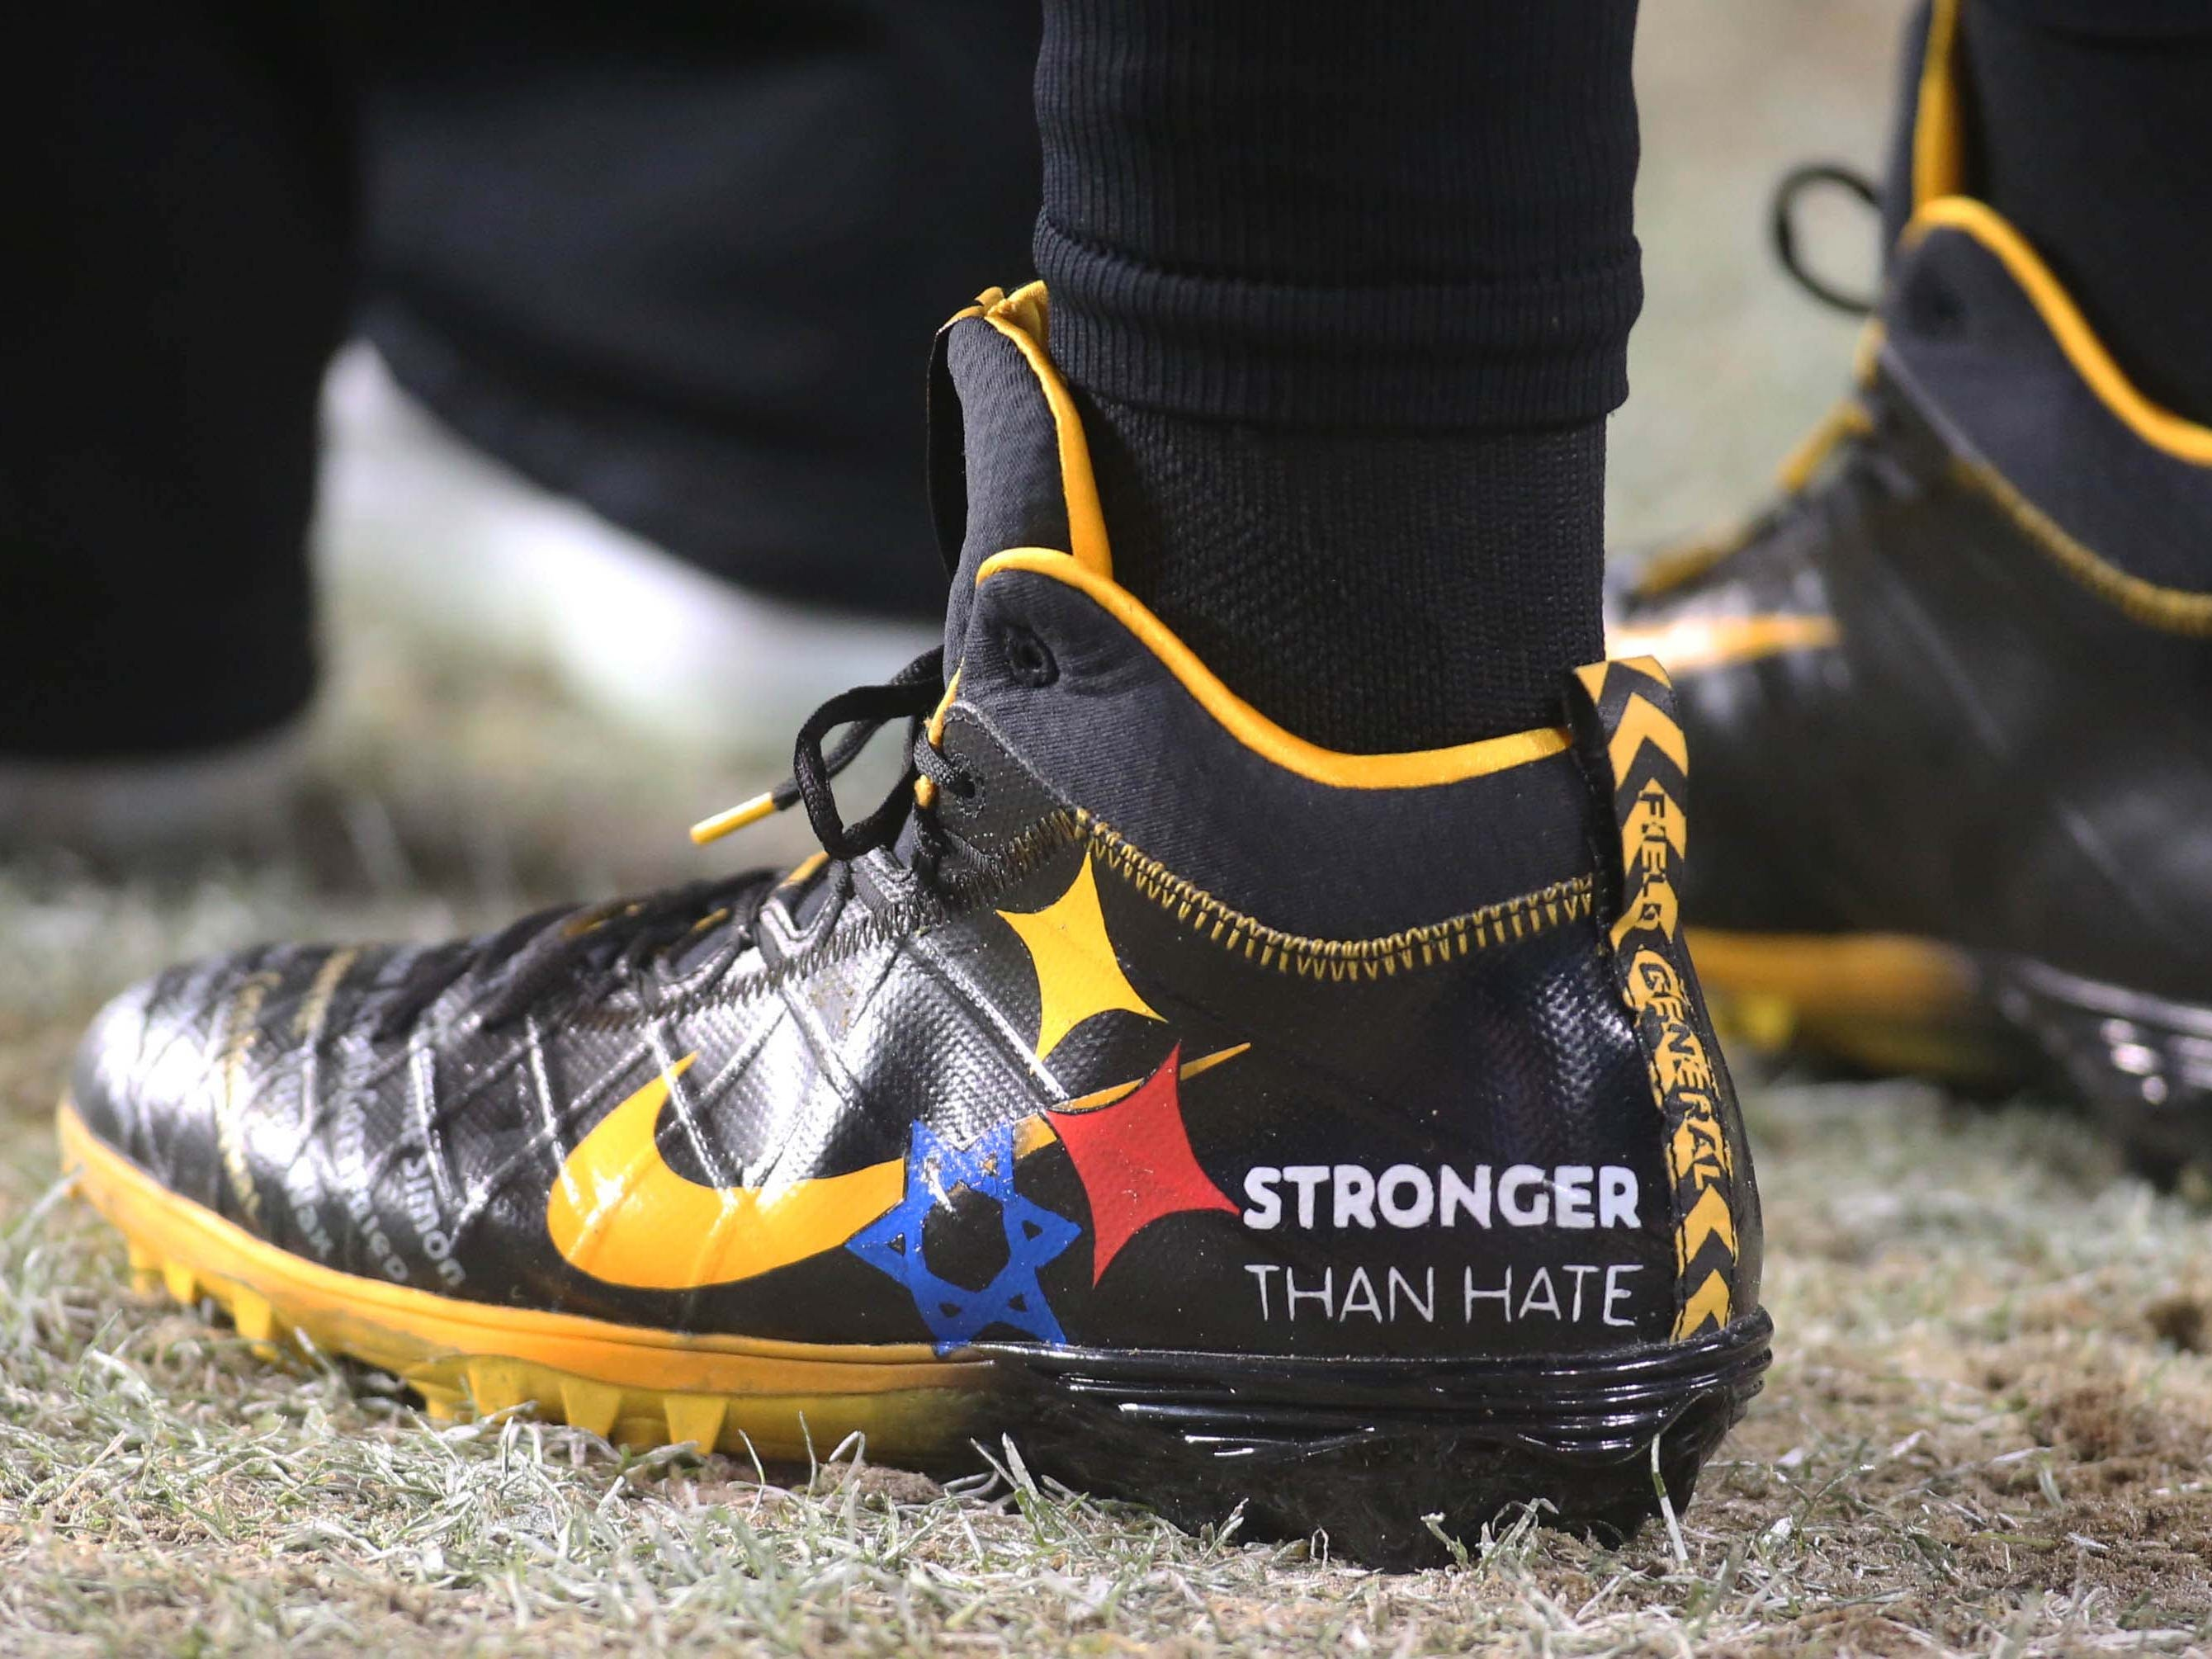 Detail view of Ben Roethlisberger's shoes for the Steelers' Thursday night game against the Panthers.